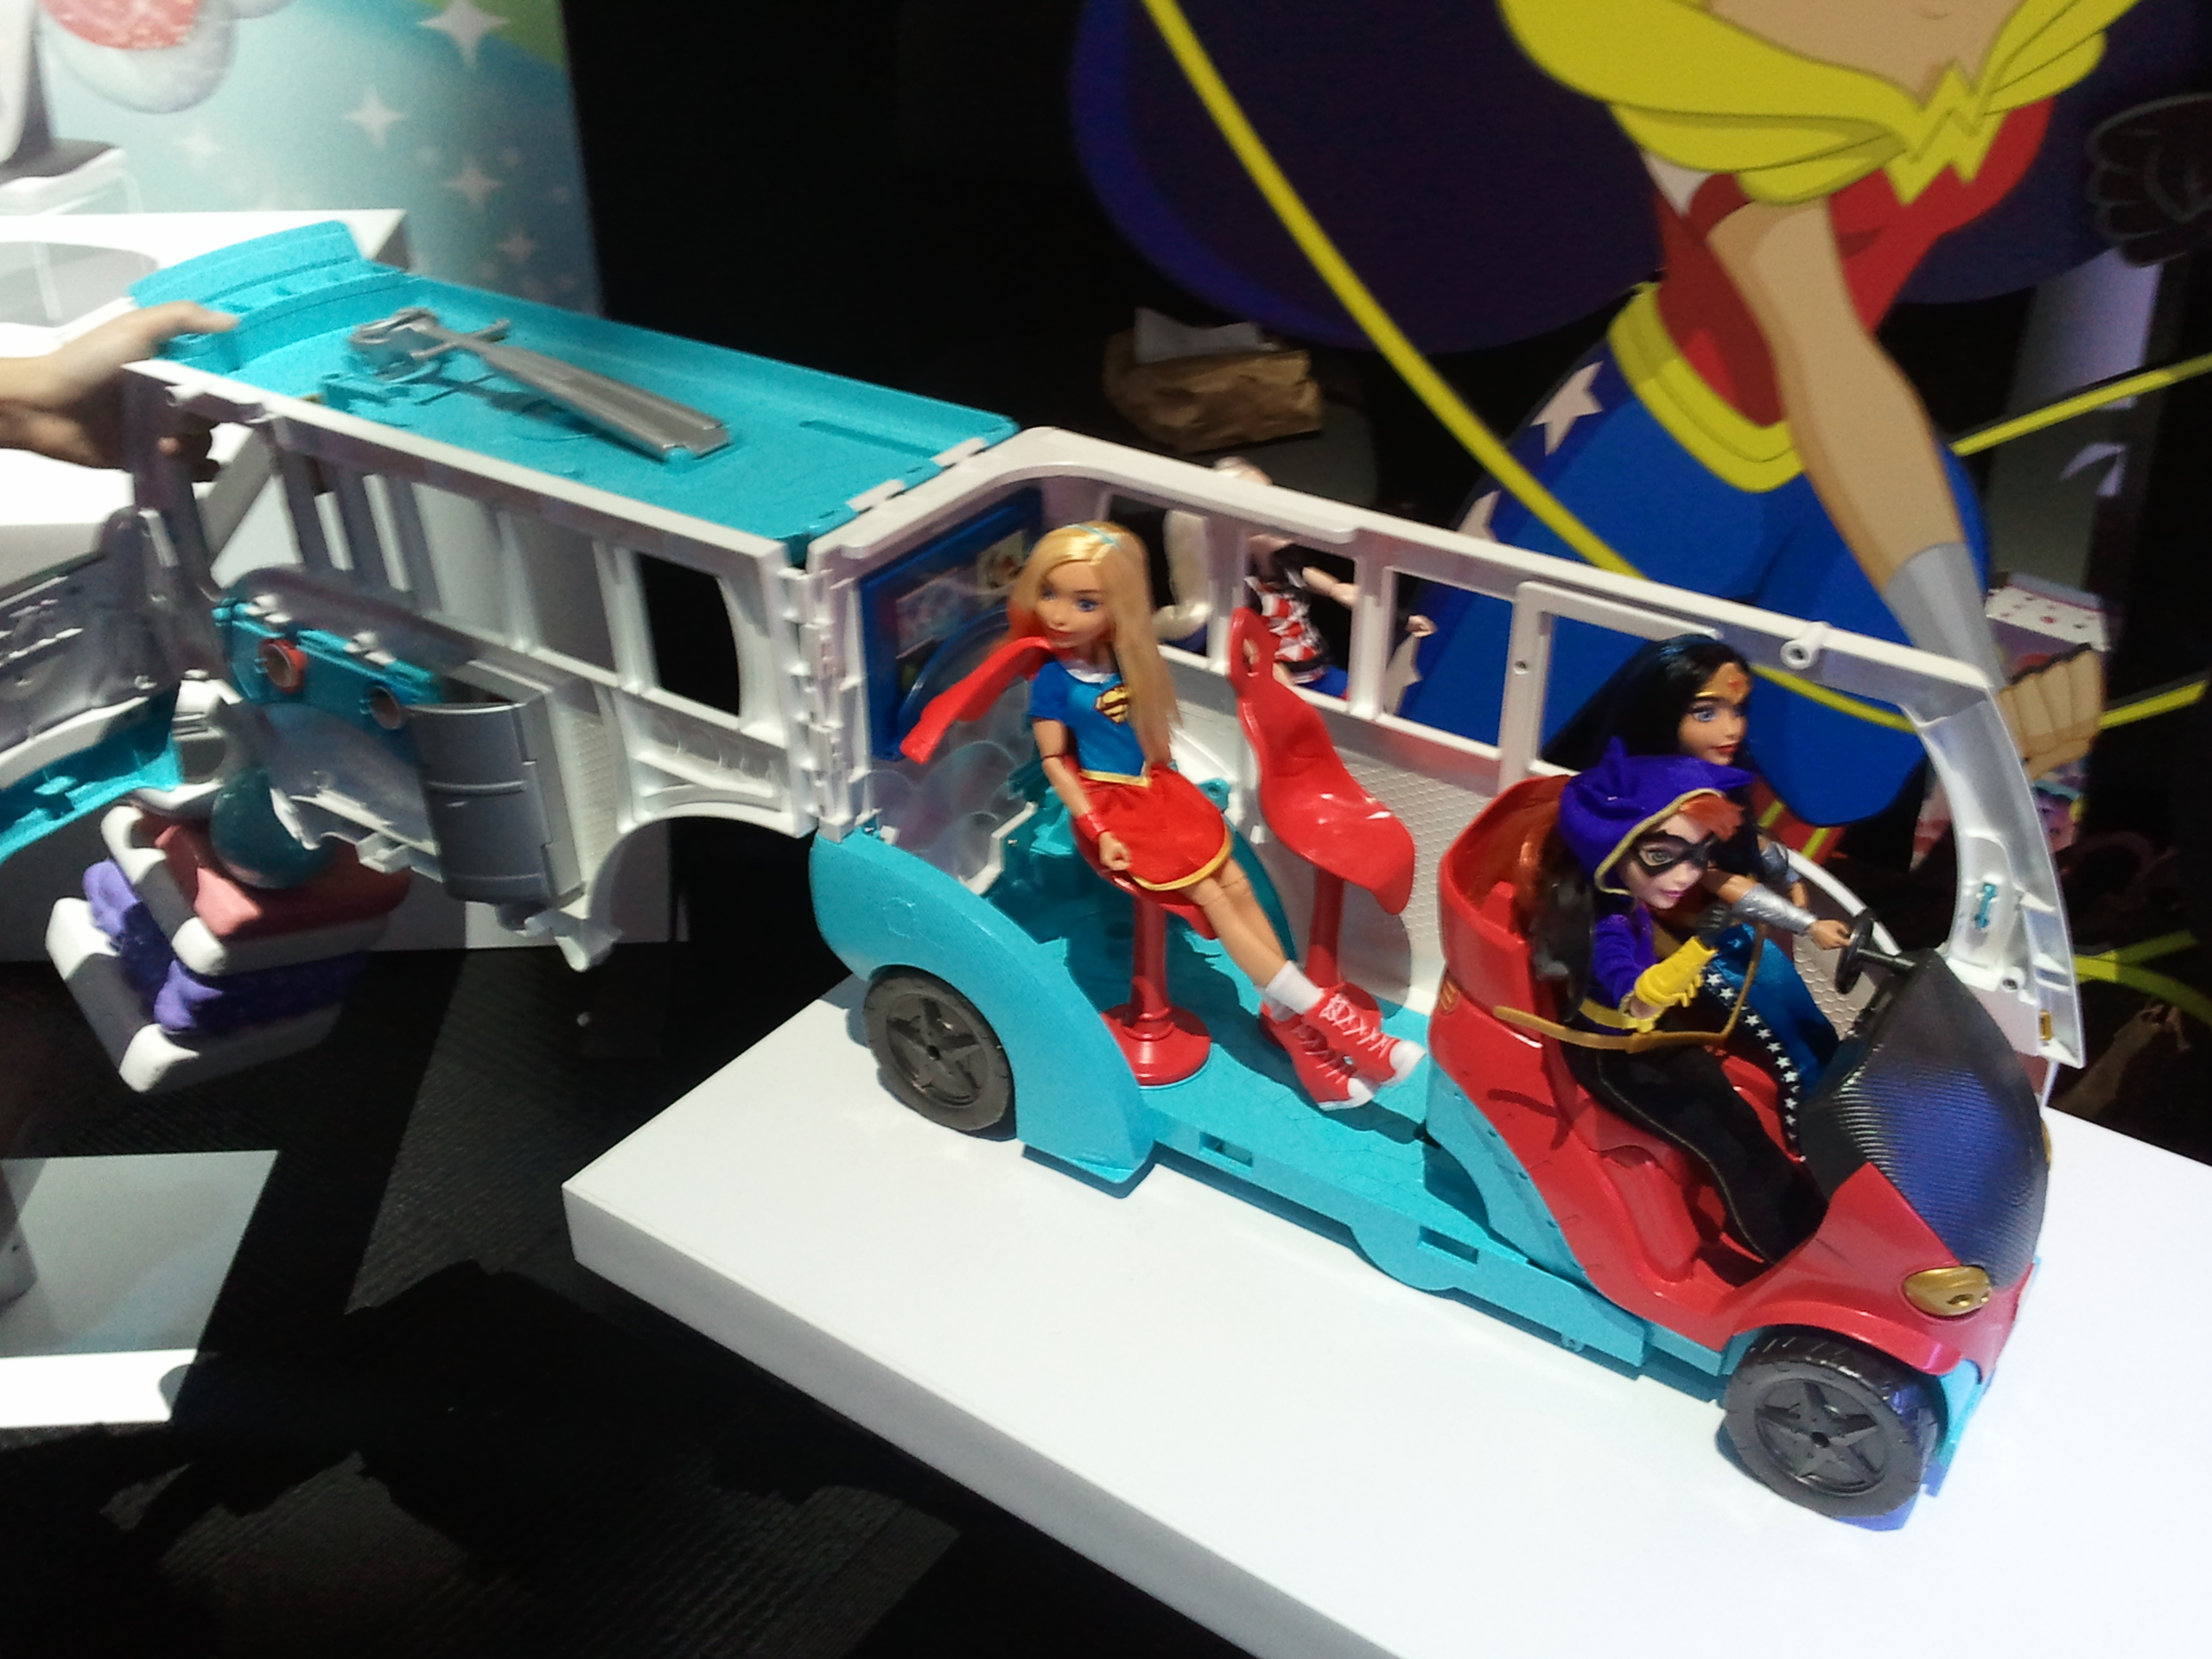 Trend DC Super Hero Girls Transforming Super Bus FGY SRP years Available Fall uAt Super Hero High students must be ready to save the day